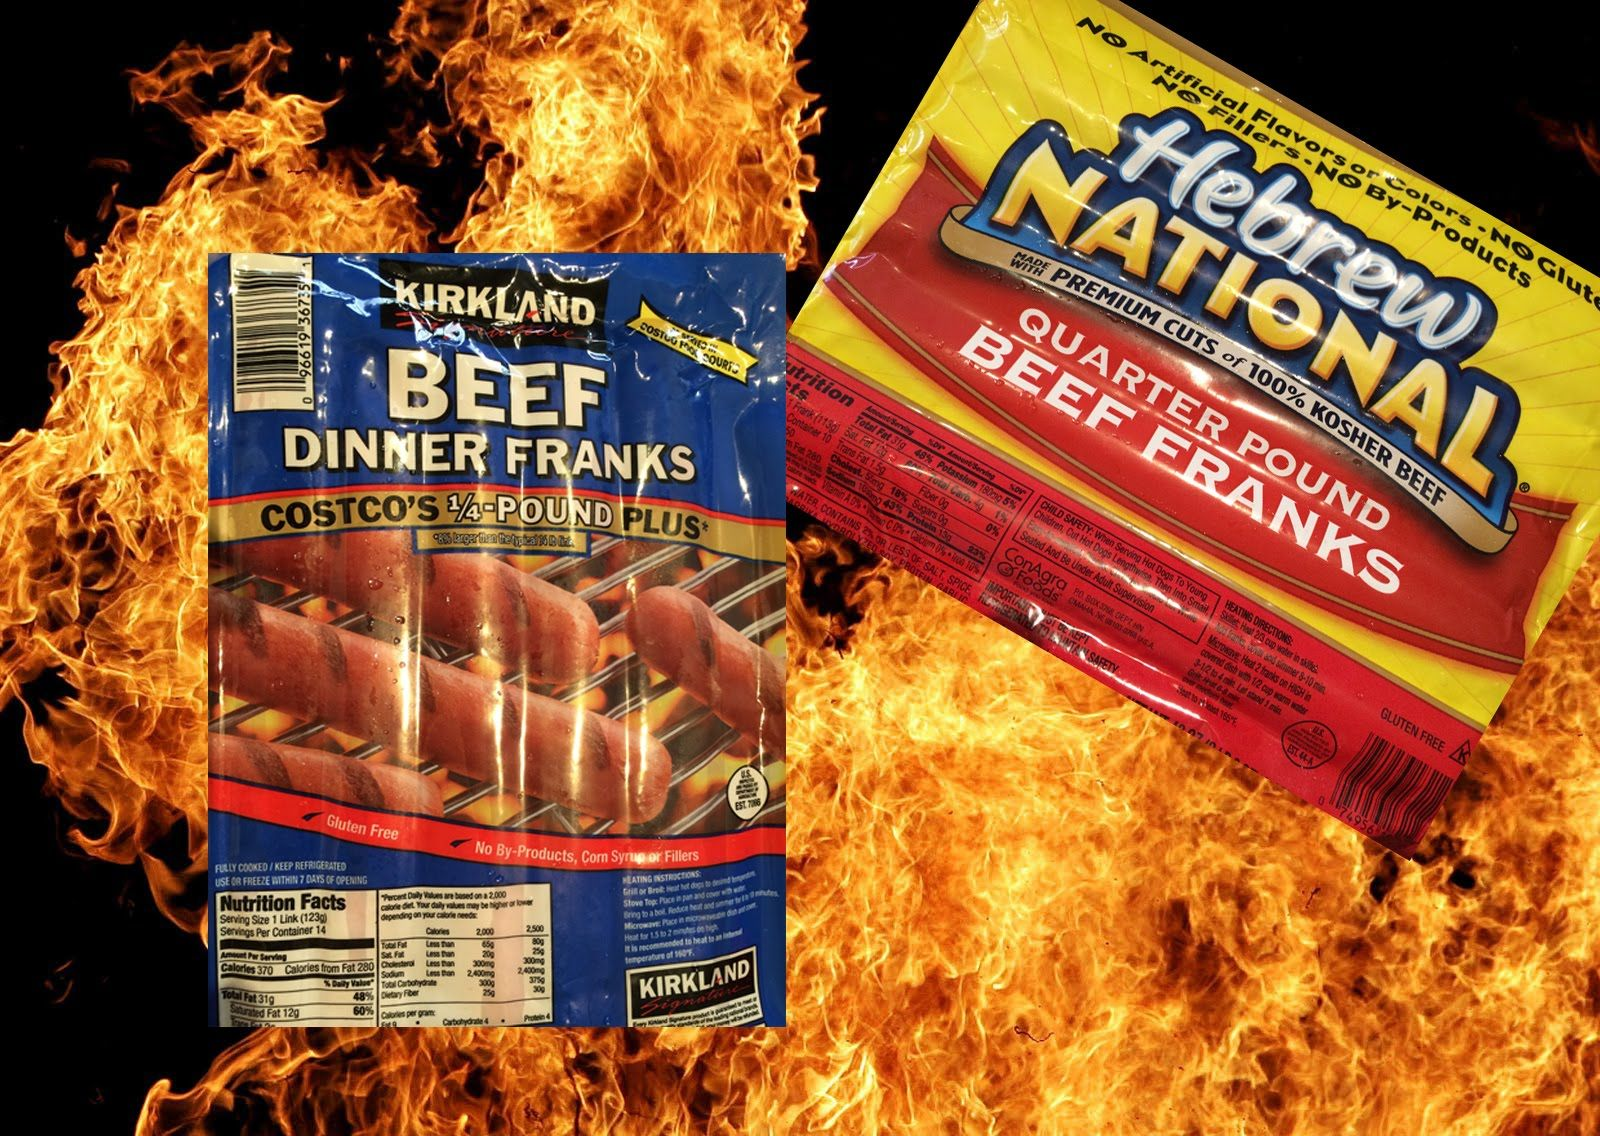 weenie war battle of the brands hot dog vs hot dog cooking show beef dinner weenie pinterest